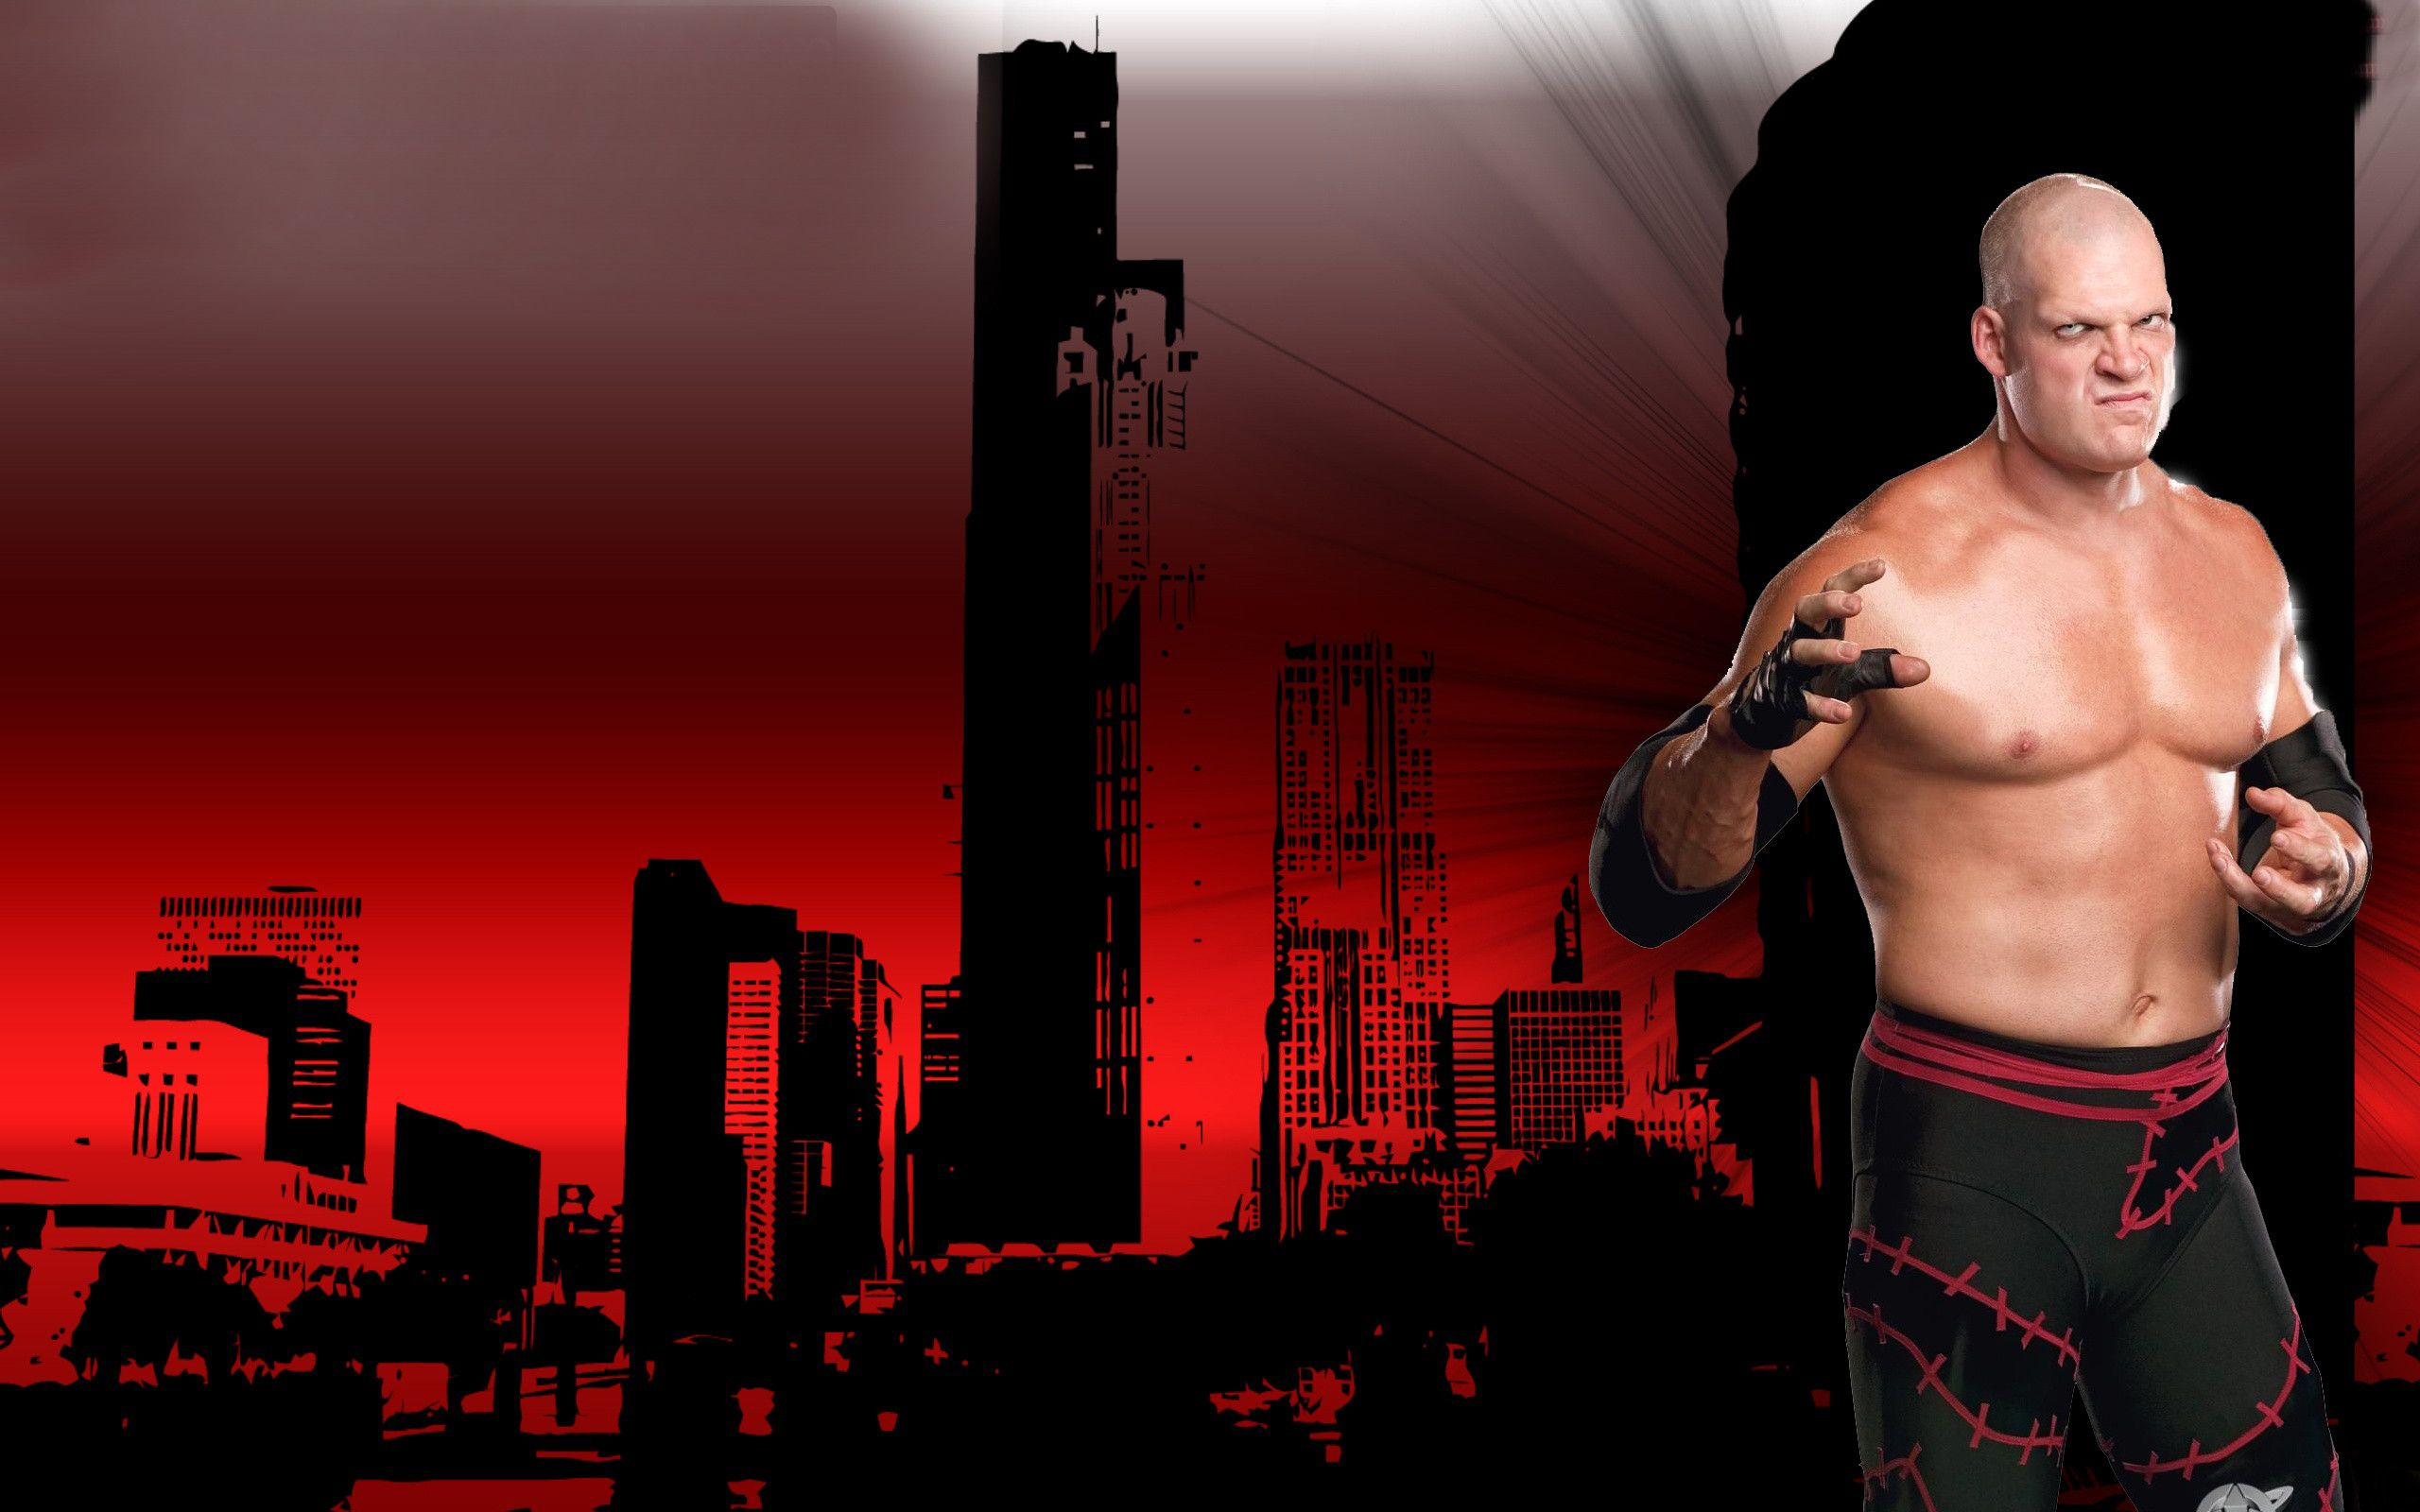 WWE The Kane 2015 Wallpapers - Wallpaper Cave